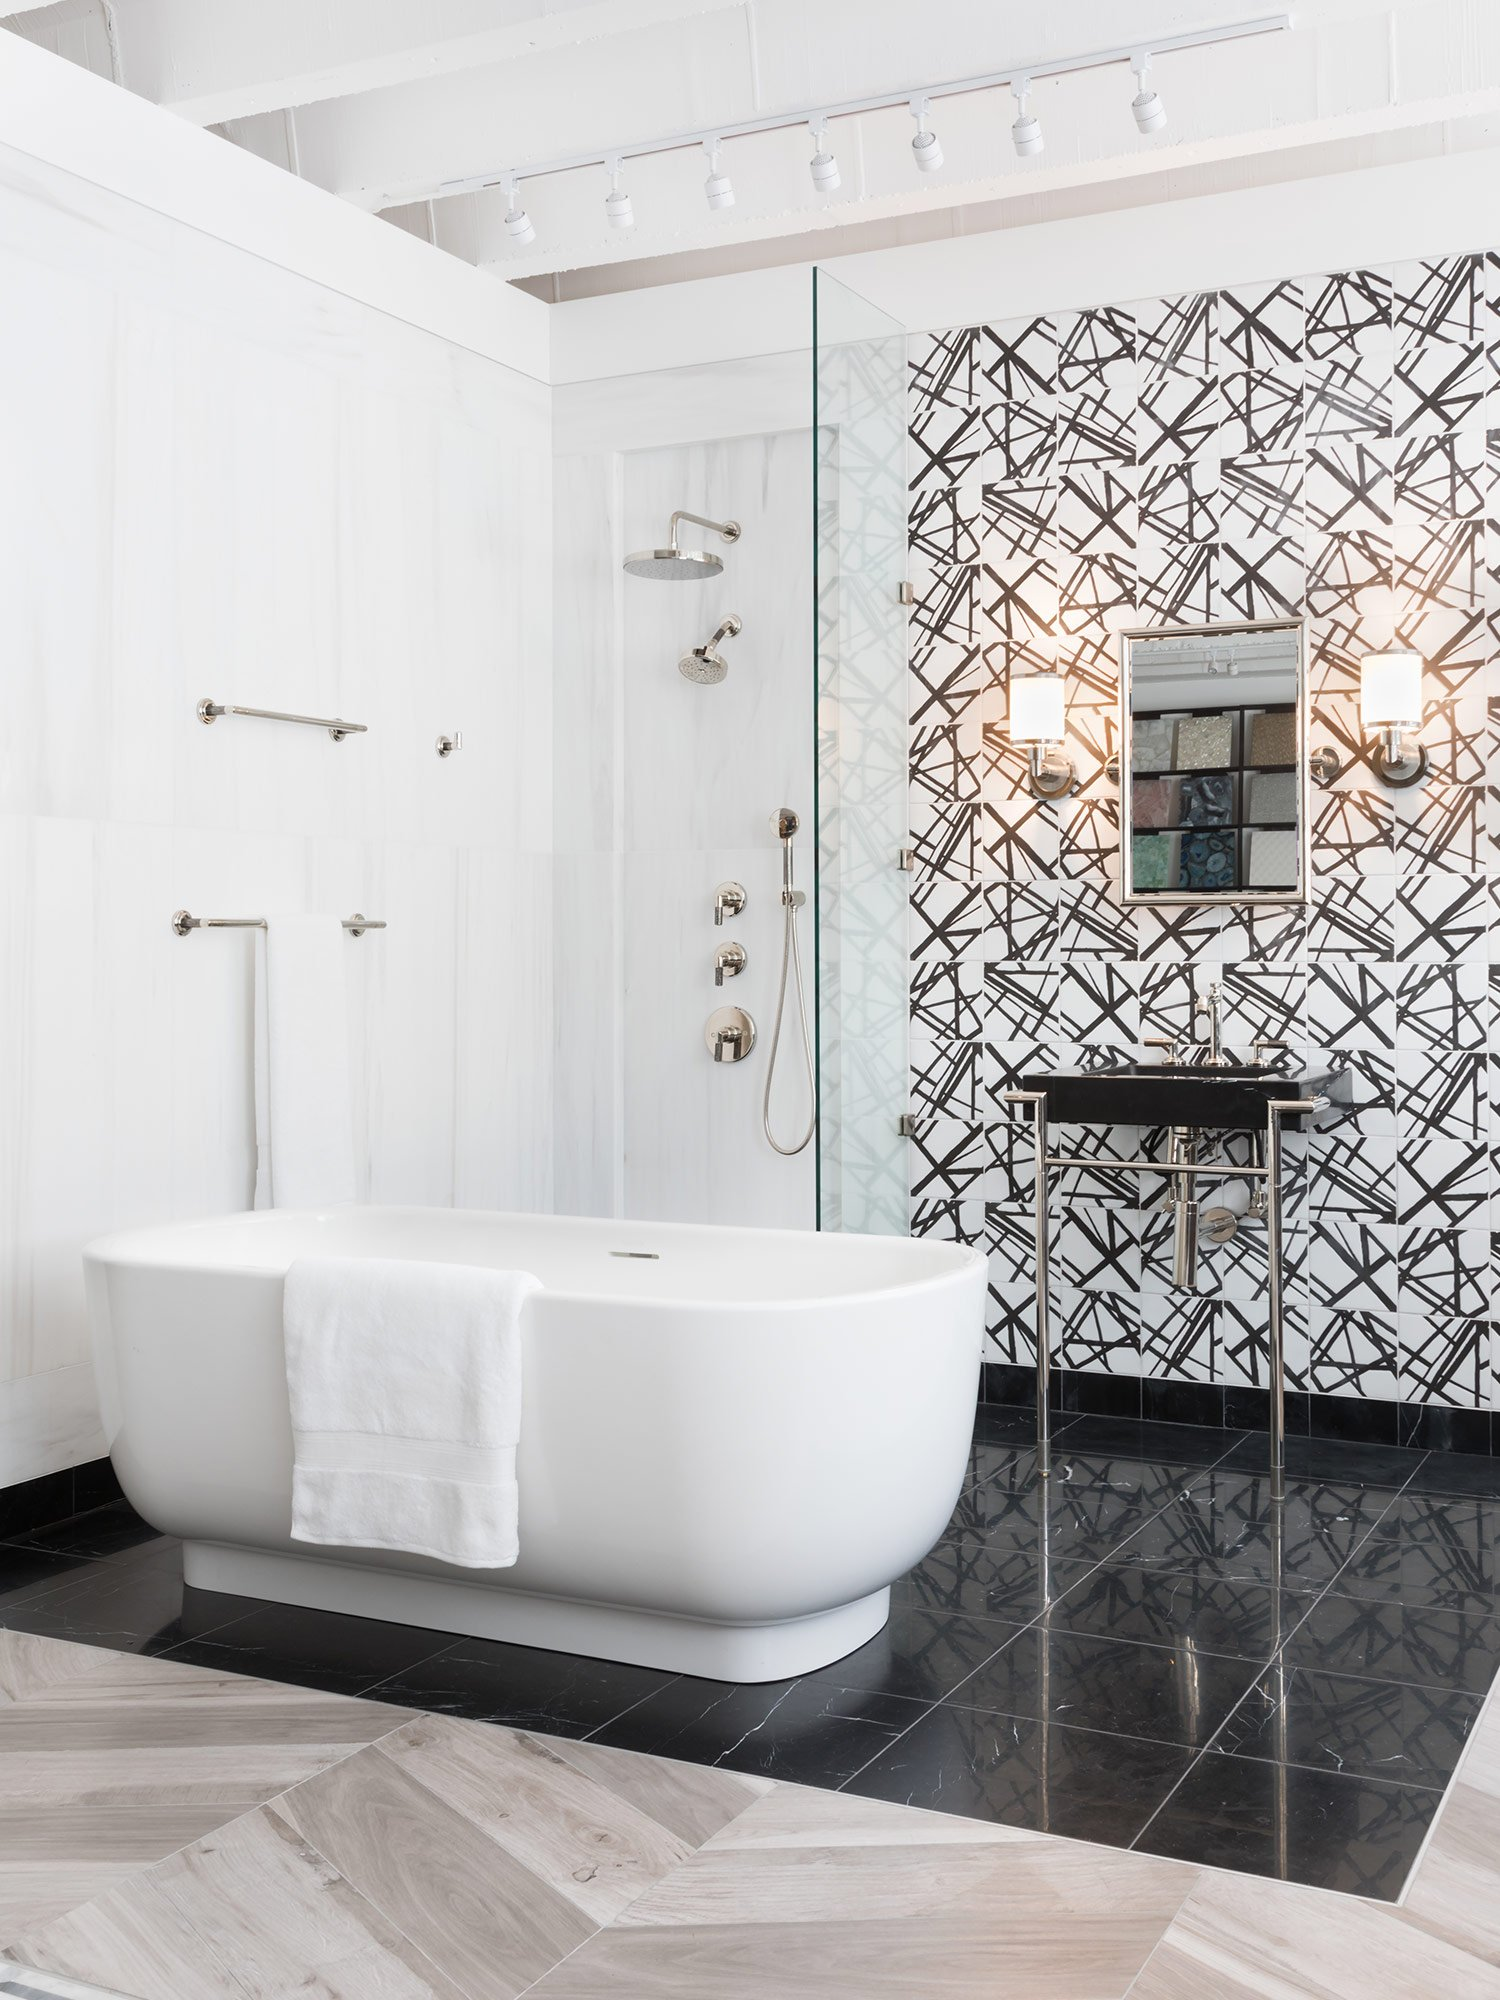 West One Bathrooms Chelsea Design Centre Showroom 2a